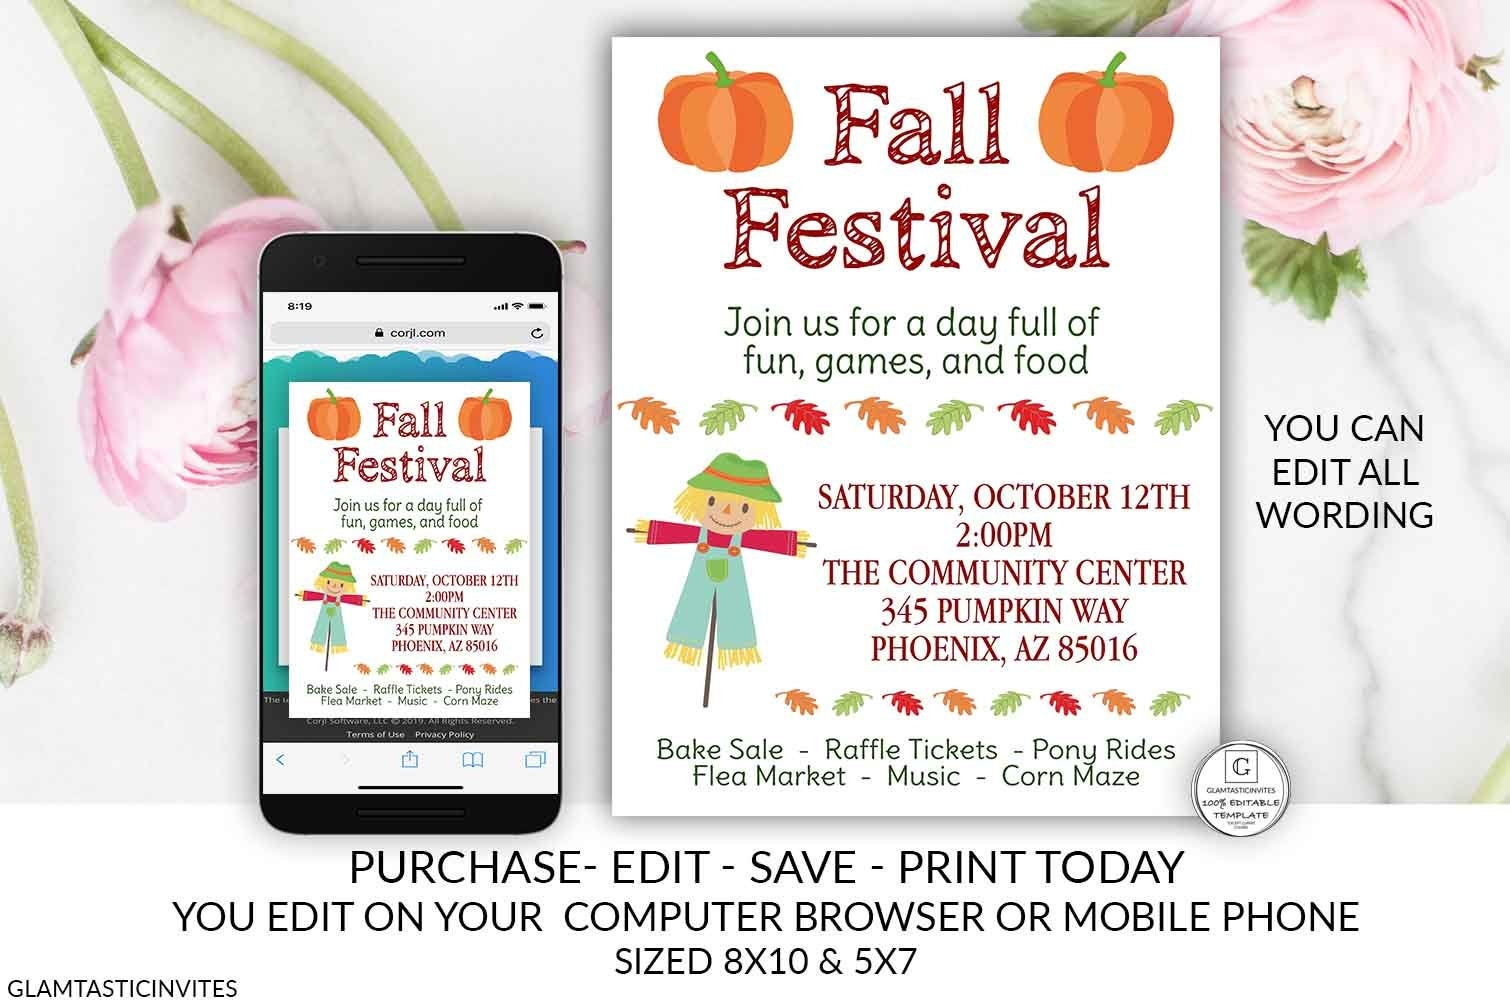 Fall Festival Flyer Template Invitation Editable Printable Thanksgiving Musical Event Corn Maze Fall Autumn Church Festival Bake Sale DIY